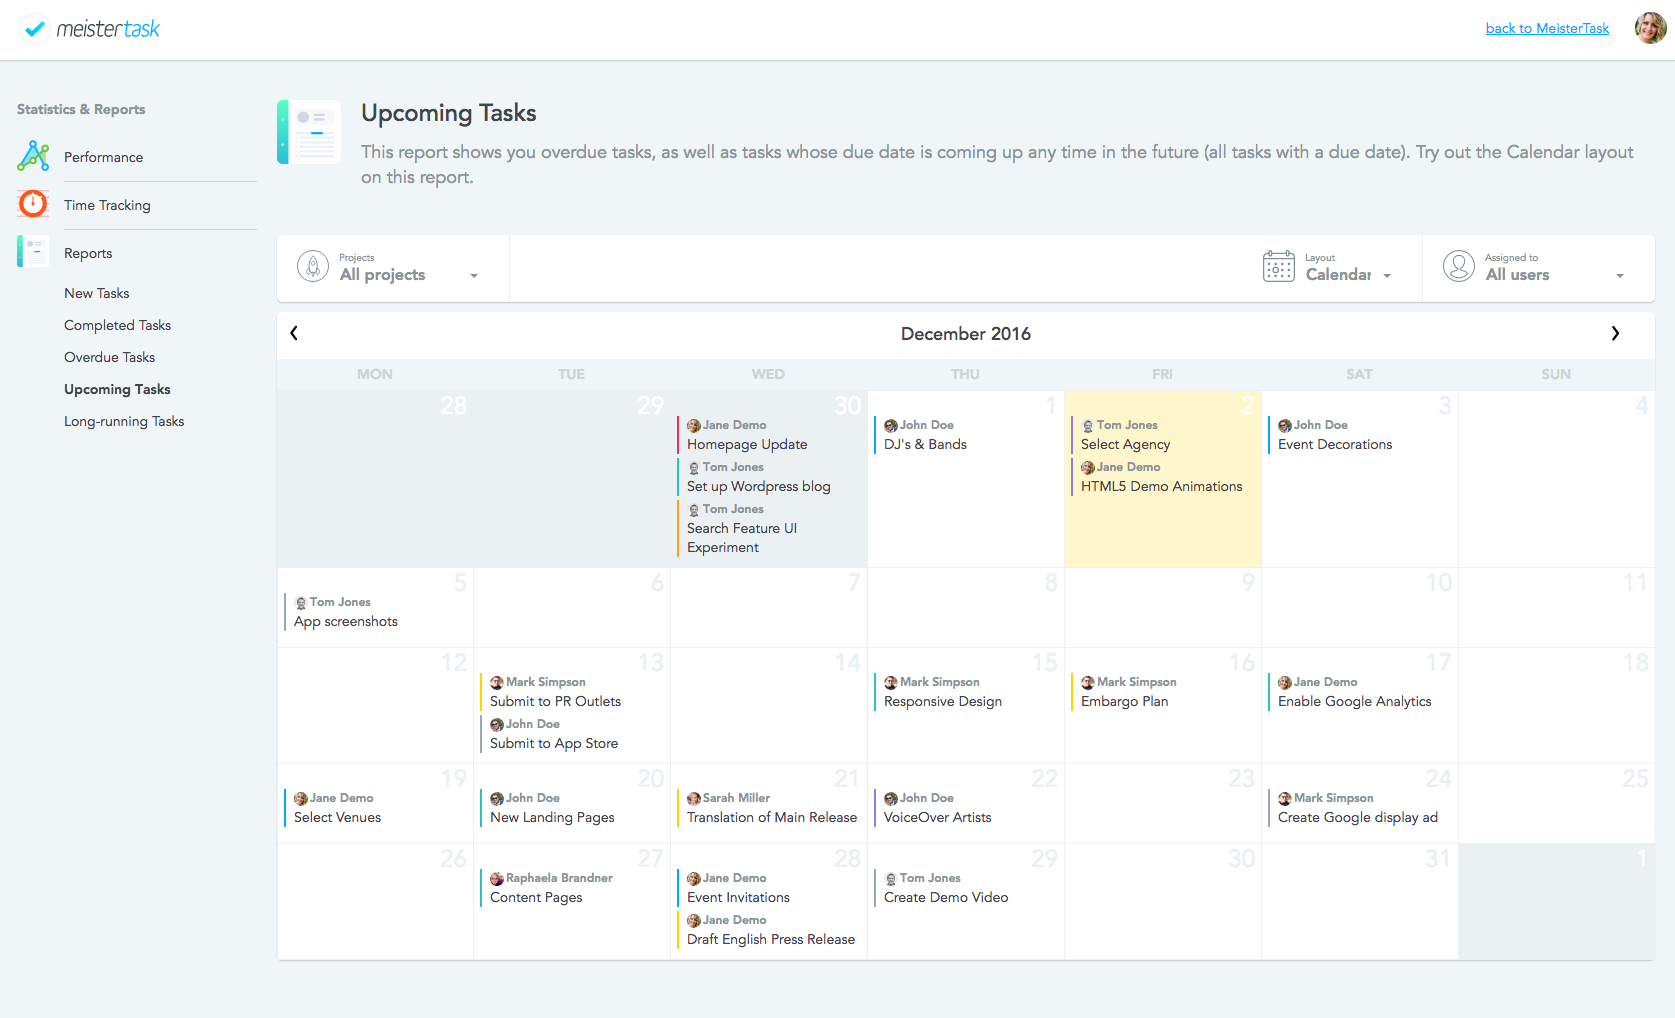 Statistics and reports: Upcoming tasks report in calendar view